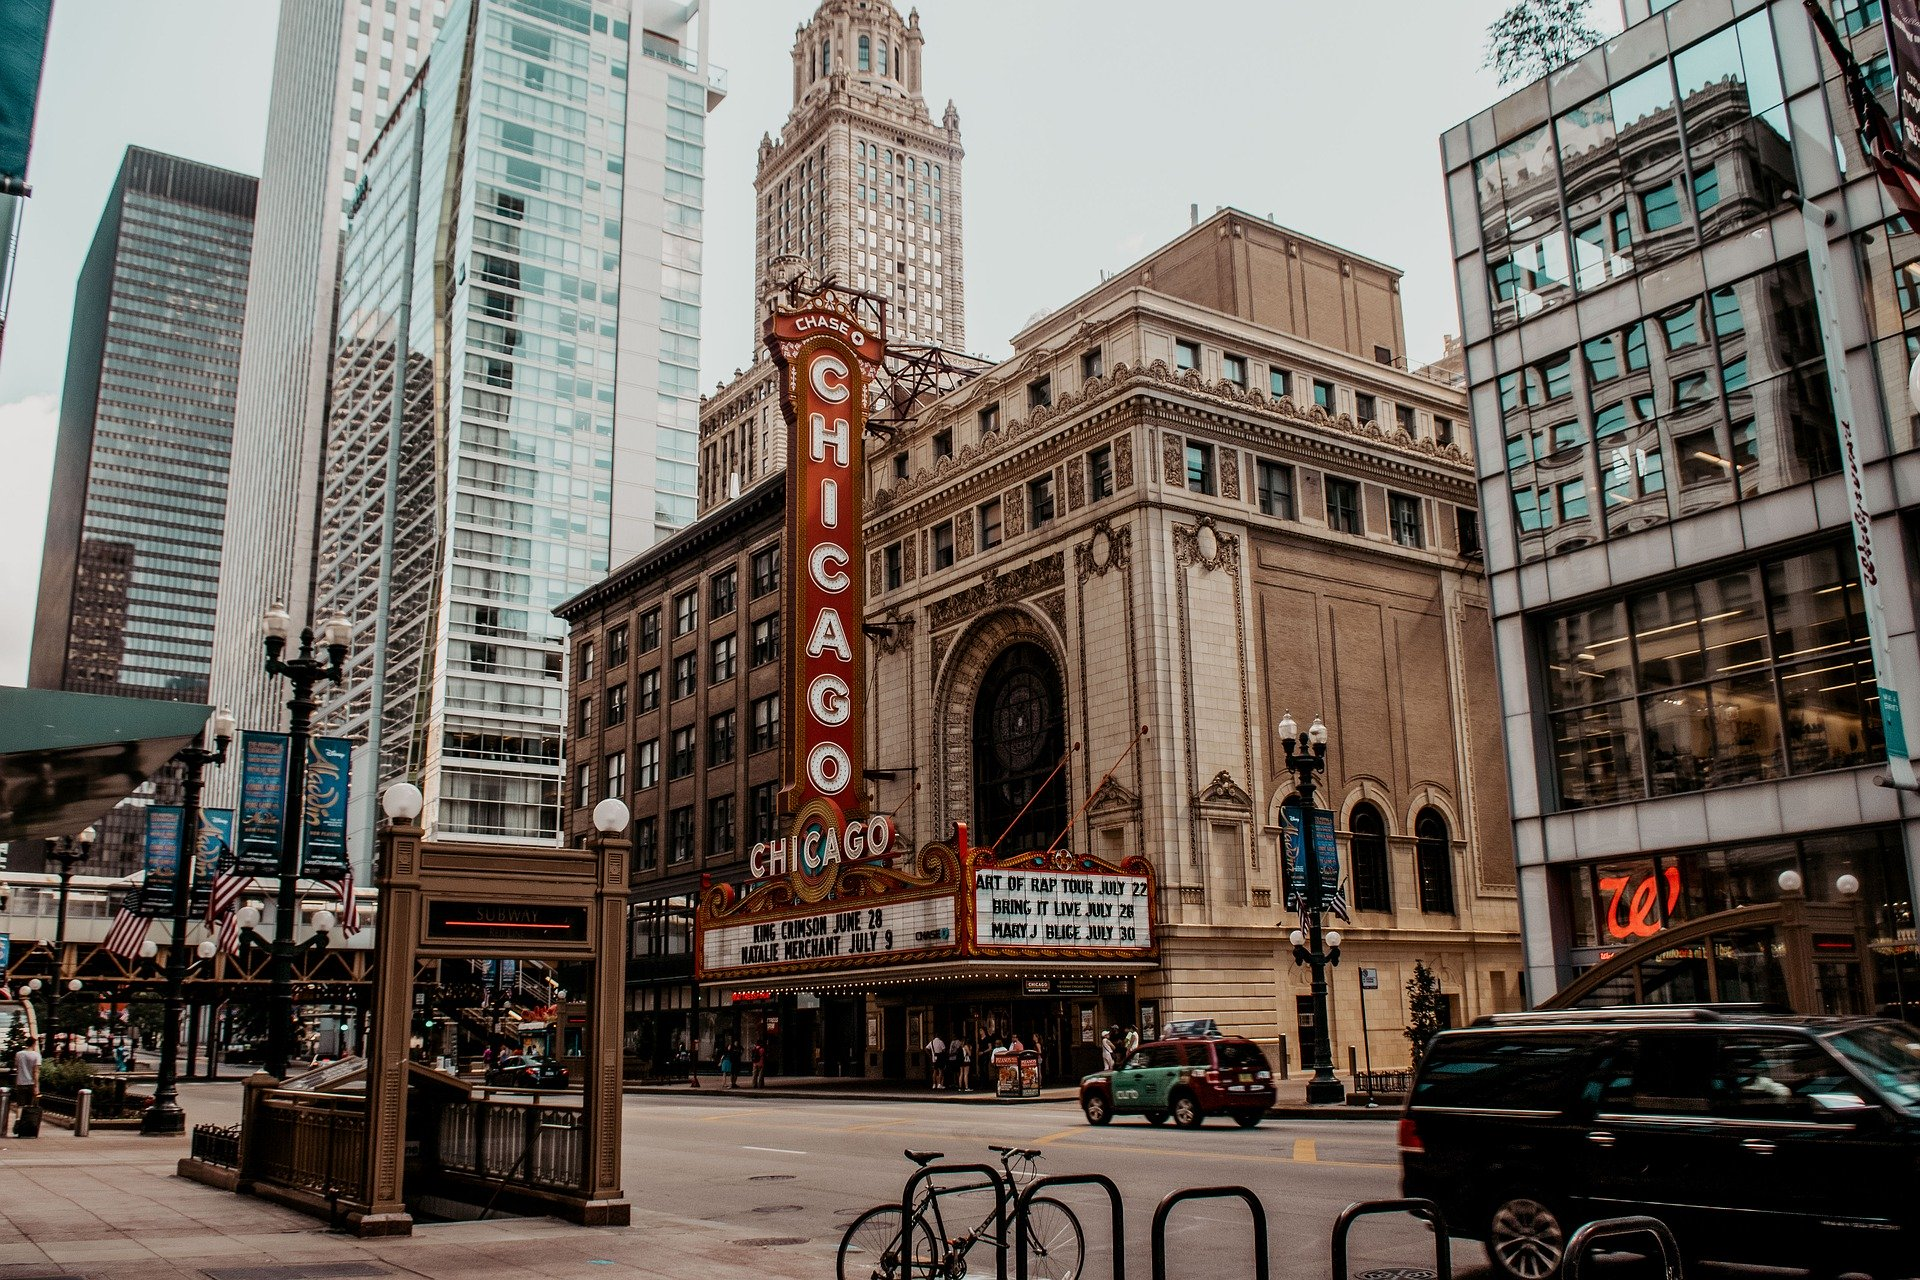 Eviction And Renting In Illinois During The Coronavirus Pandemic: What Rights Do Renters Have?